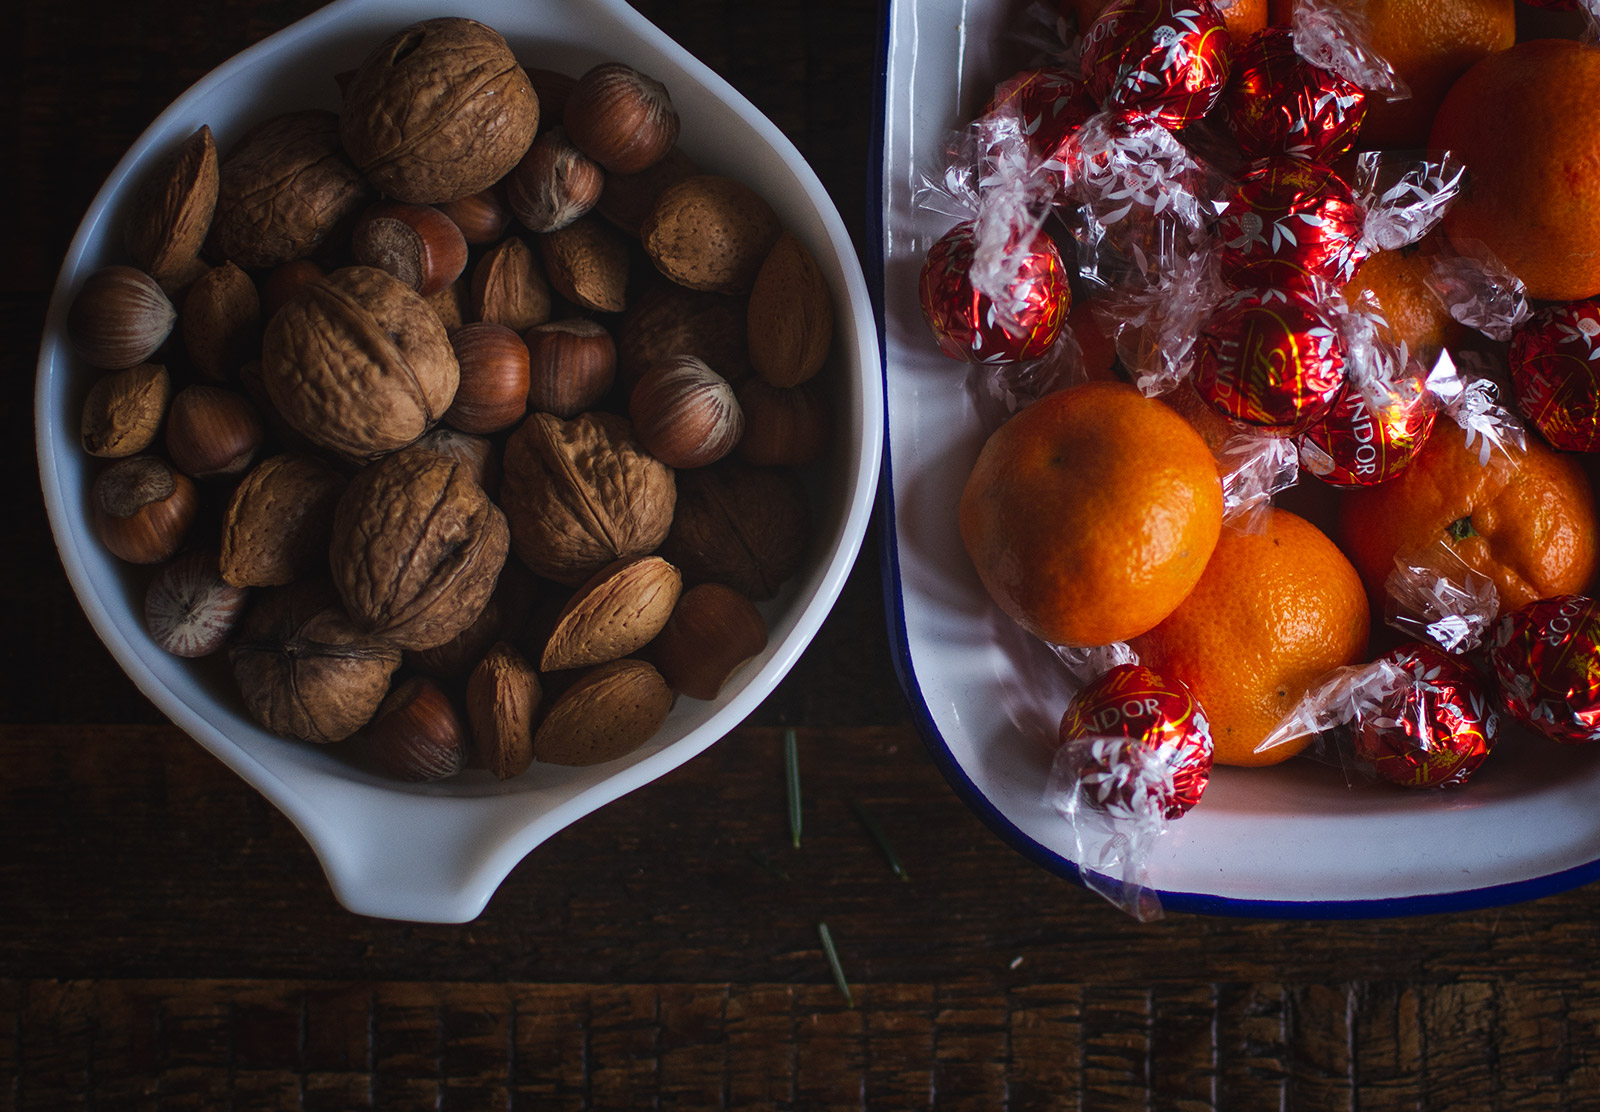 Bowls of nuts and satsumas